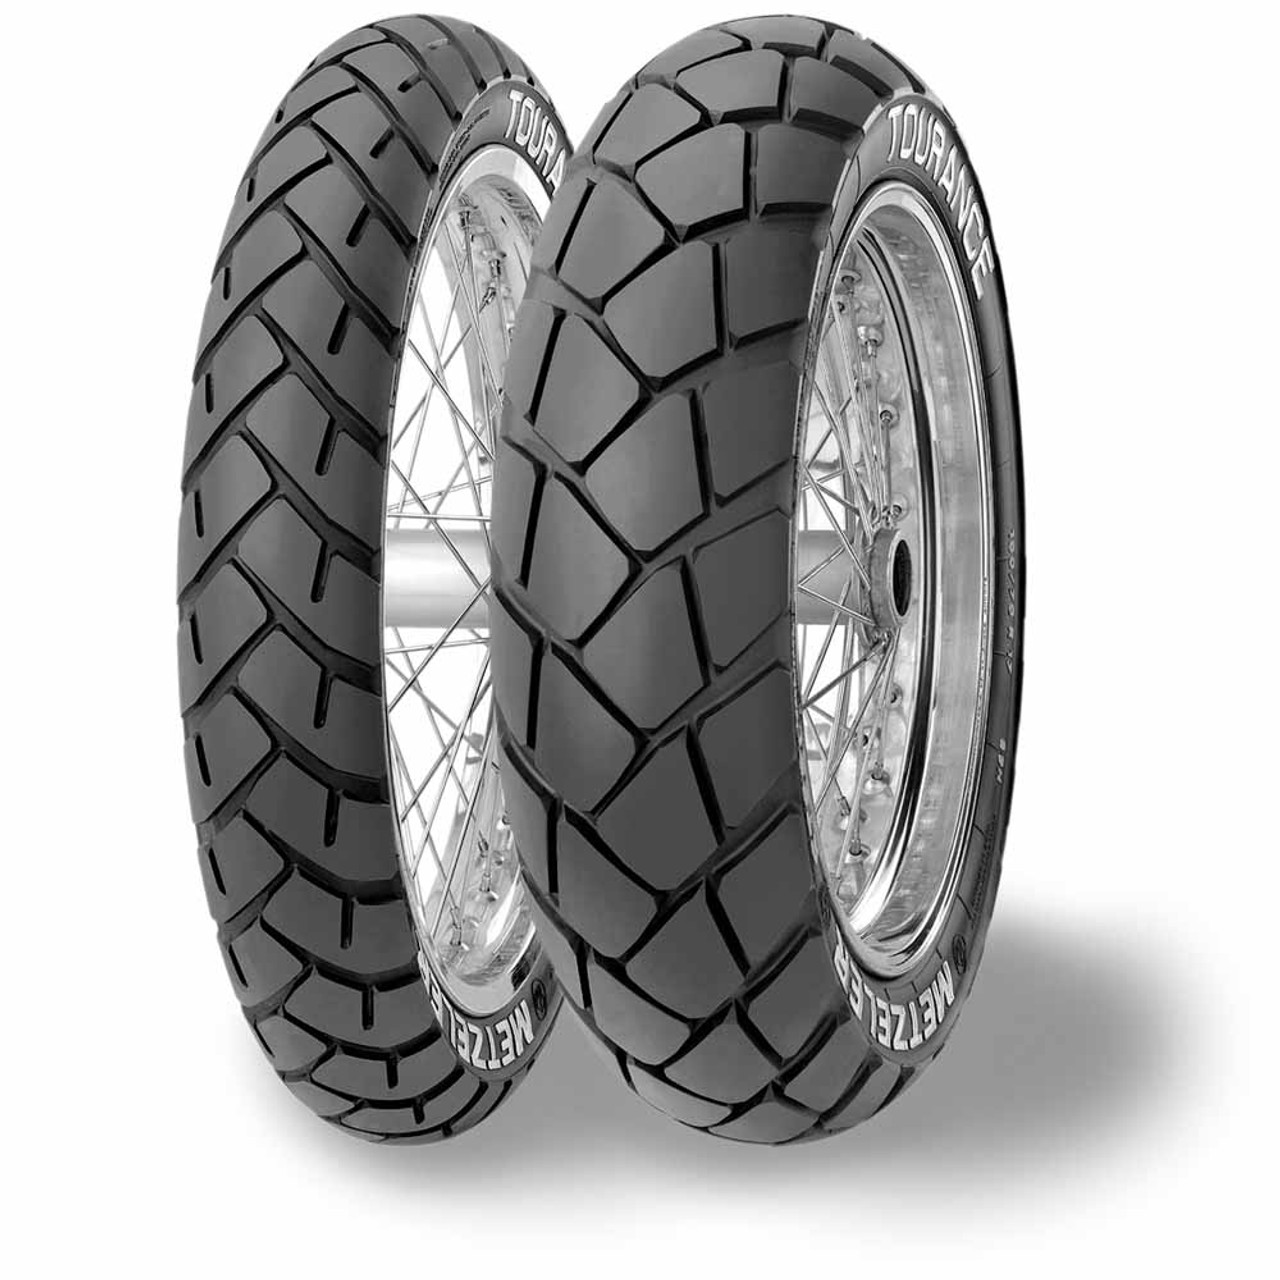 Metzeler Tourance Motorcycle Tyres 110 80 19 150 70 17 Pair For Sale Flitwick Motorcycles